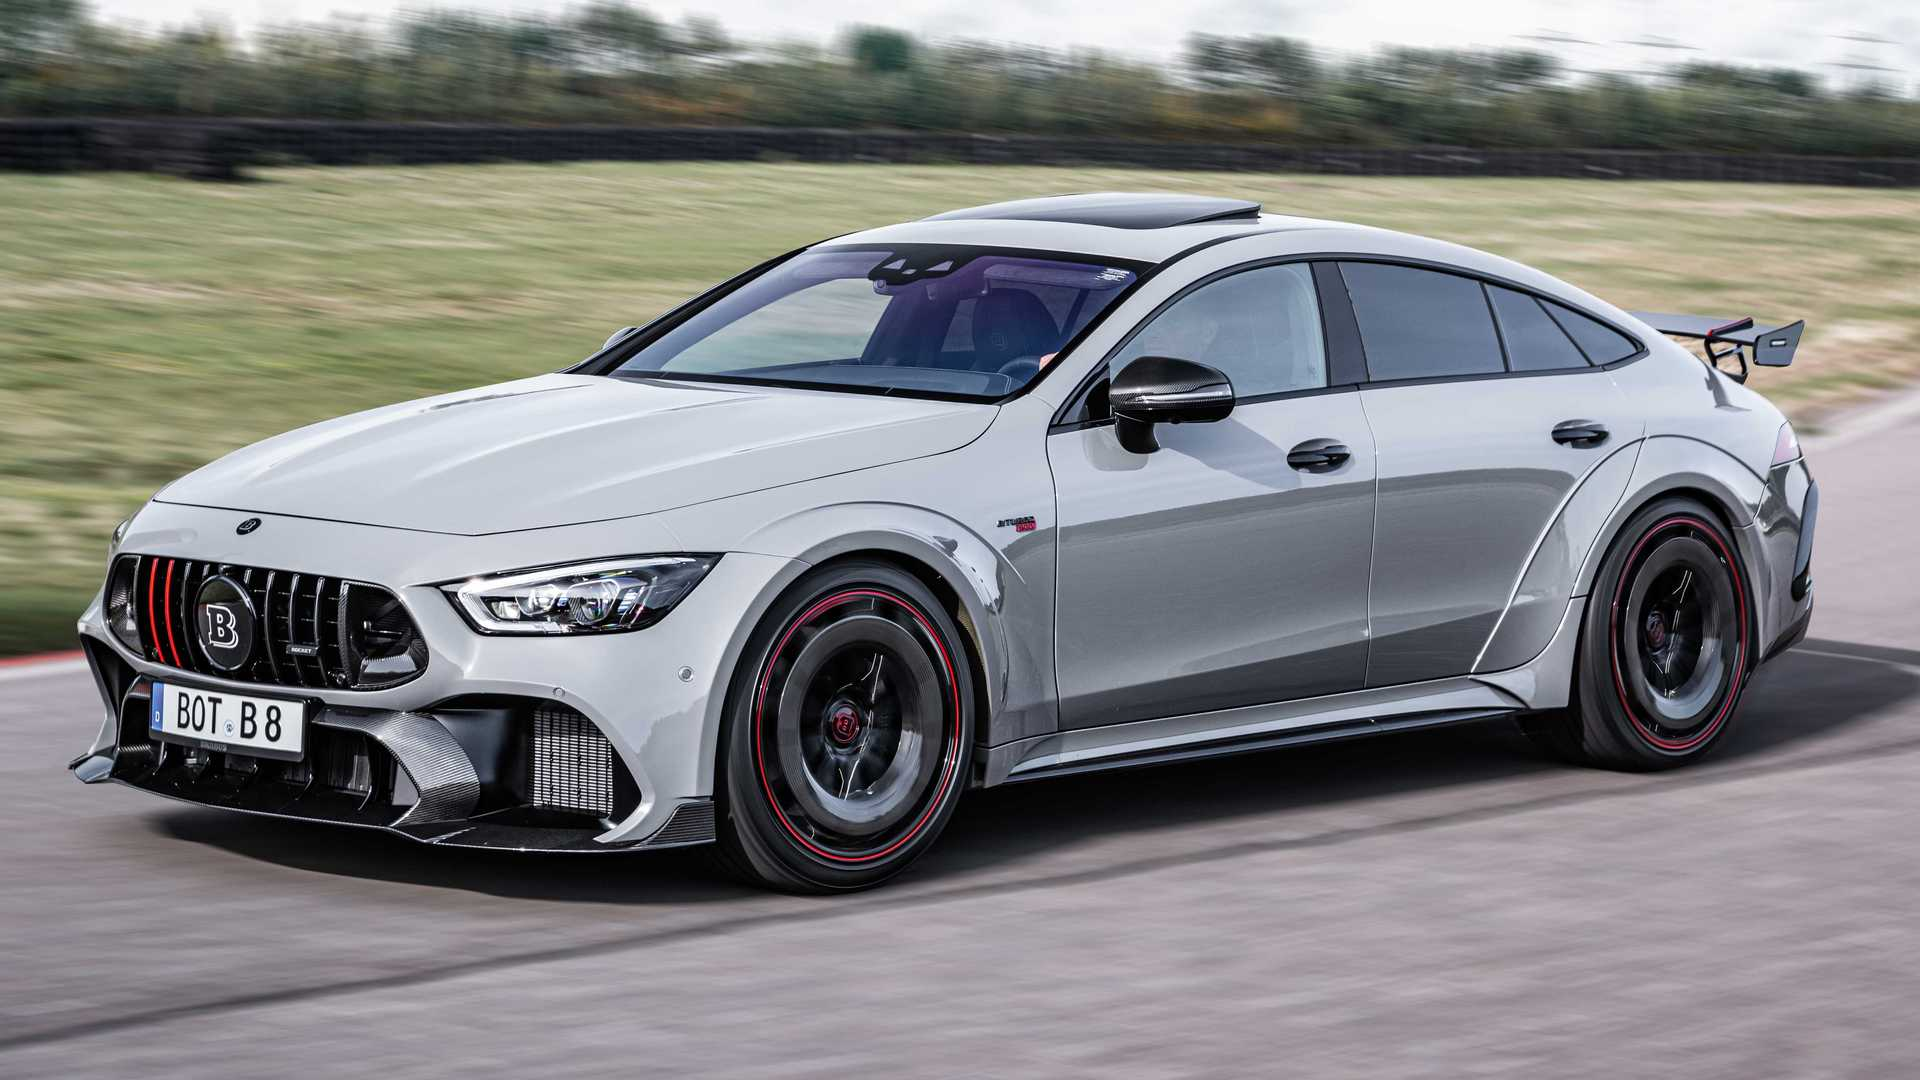 Brabus Rocket 900 Unleashed As Mercedes-AMG GT63 S With Mega Power